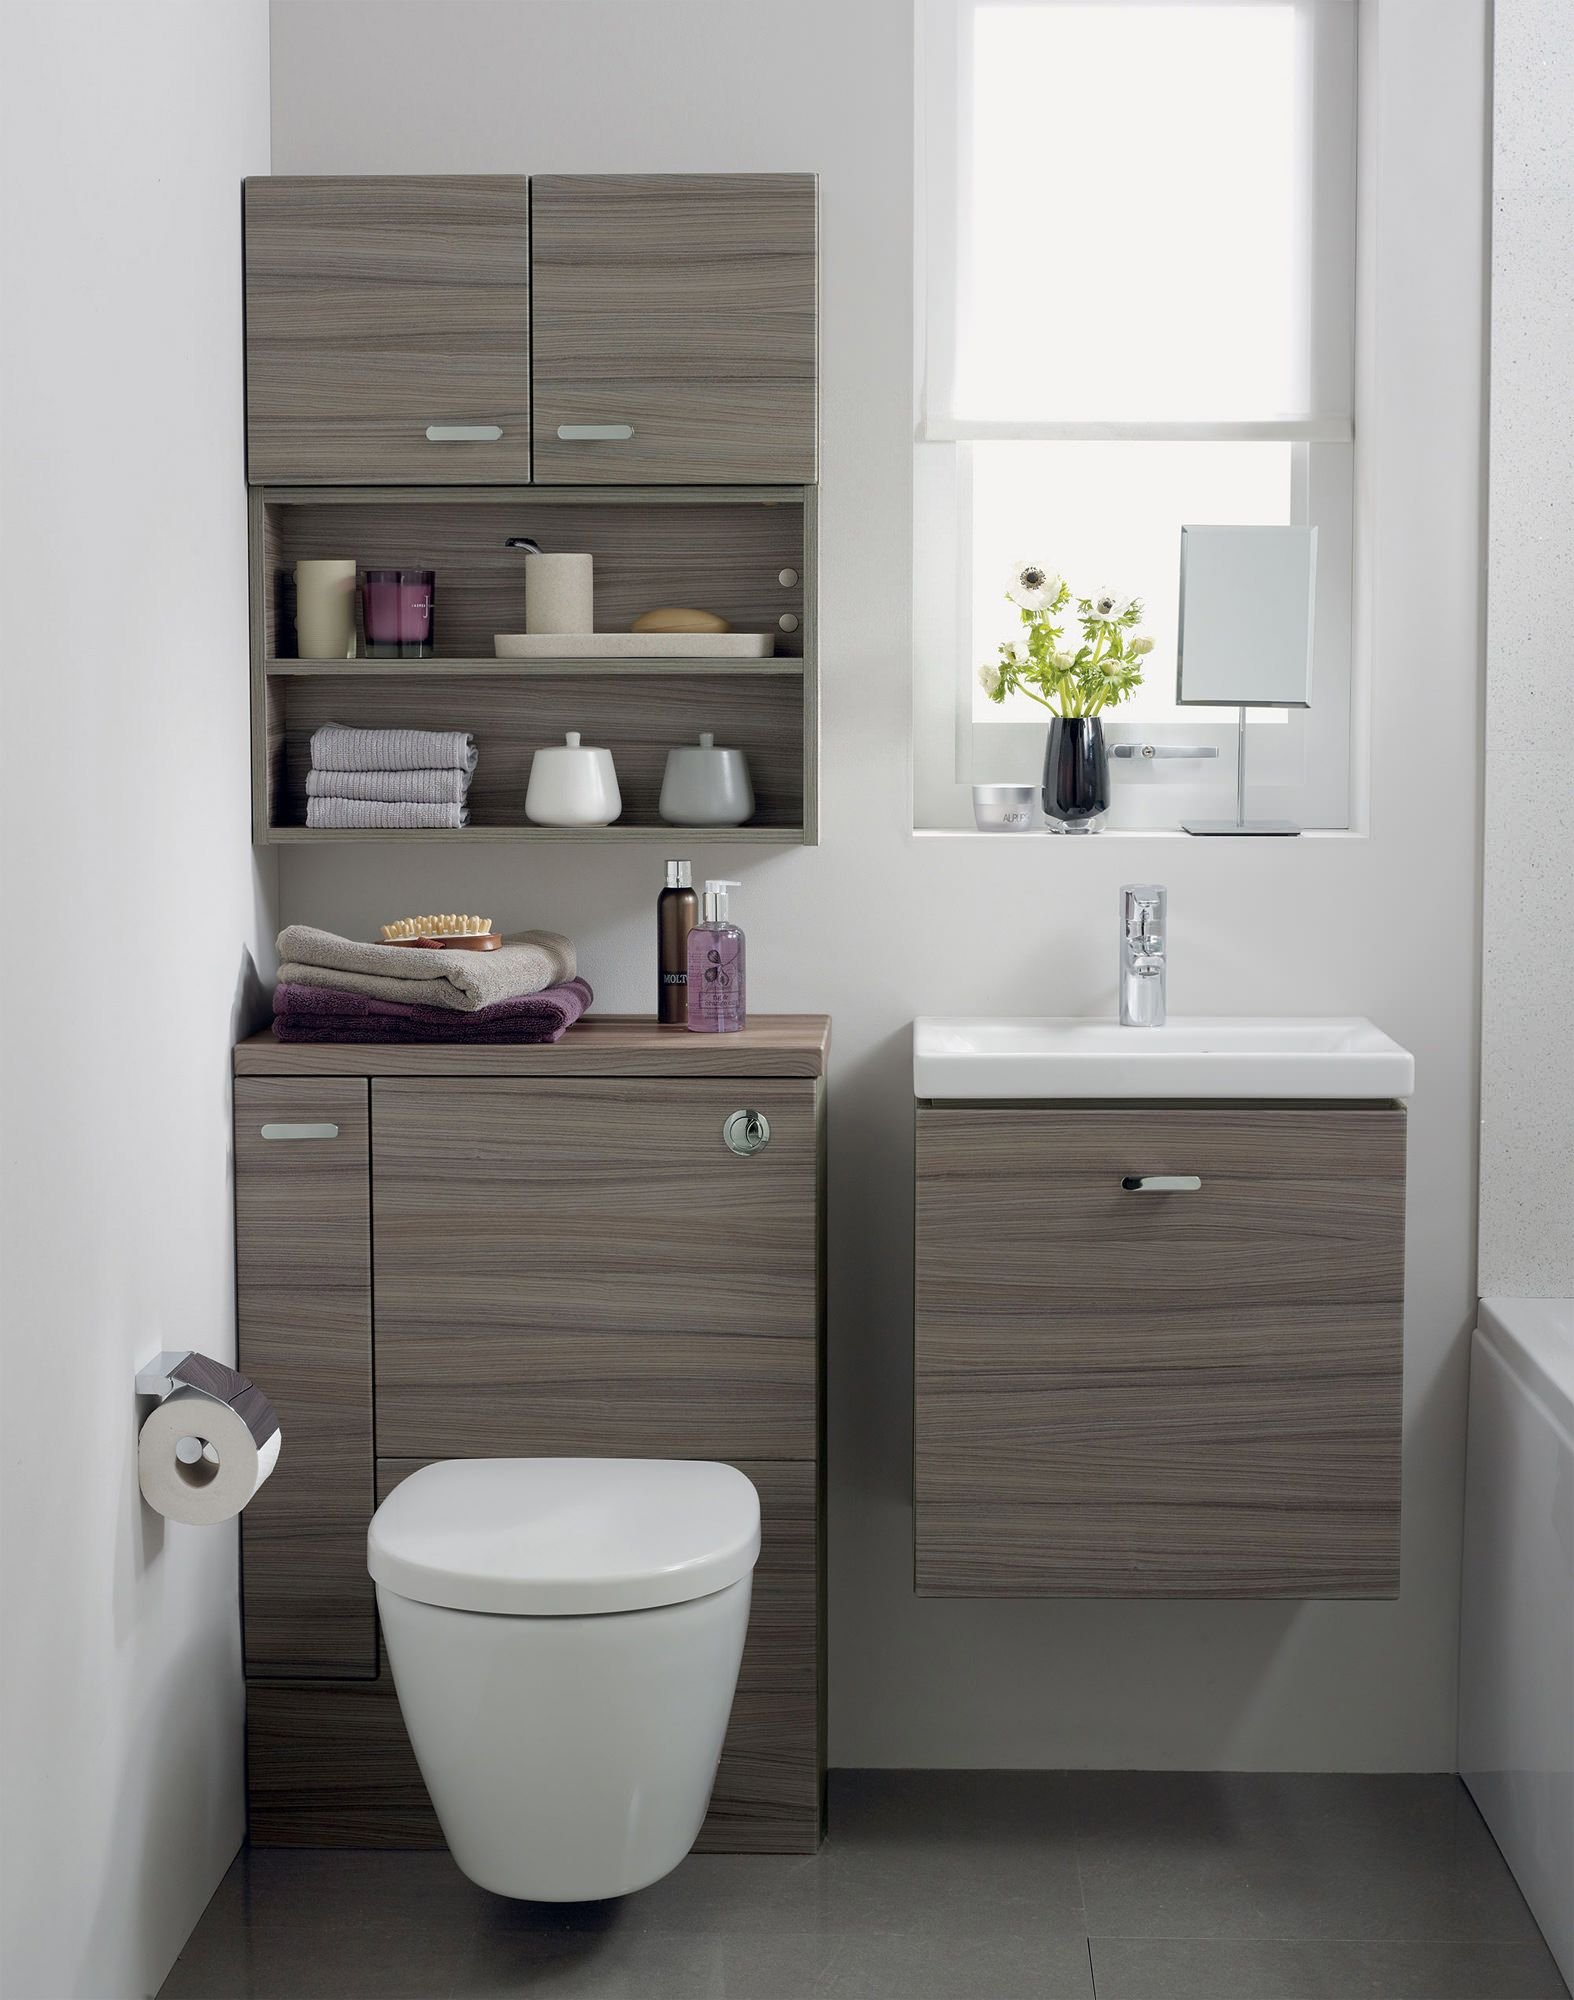 Terrific Additional Image Of Ideal Standard Concept Space Wc Unit Bralicious Painted Fabric Chair Ideas Braliciousco